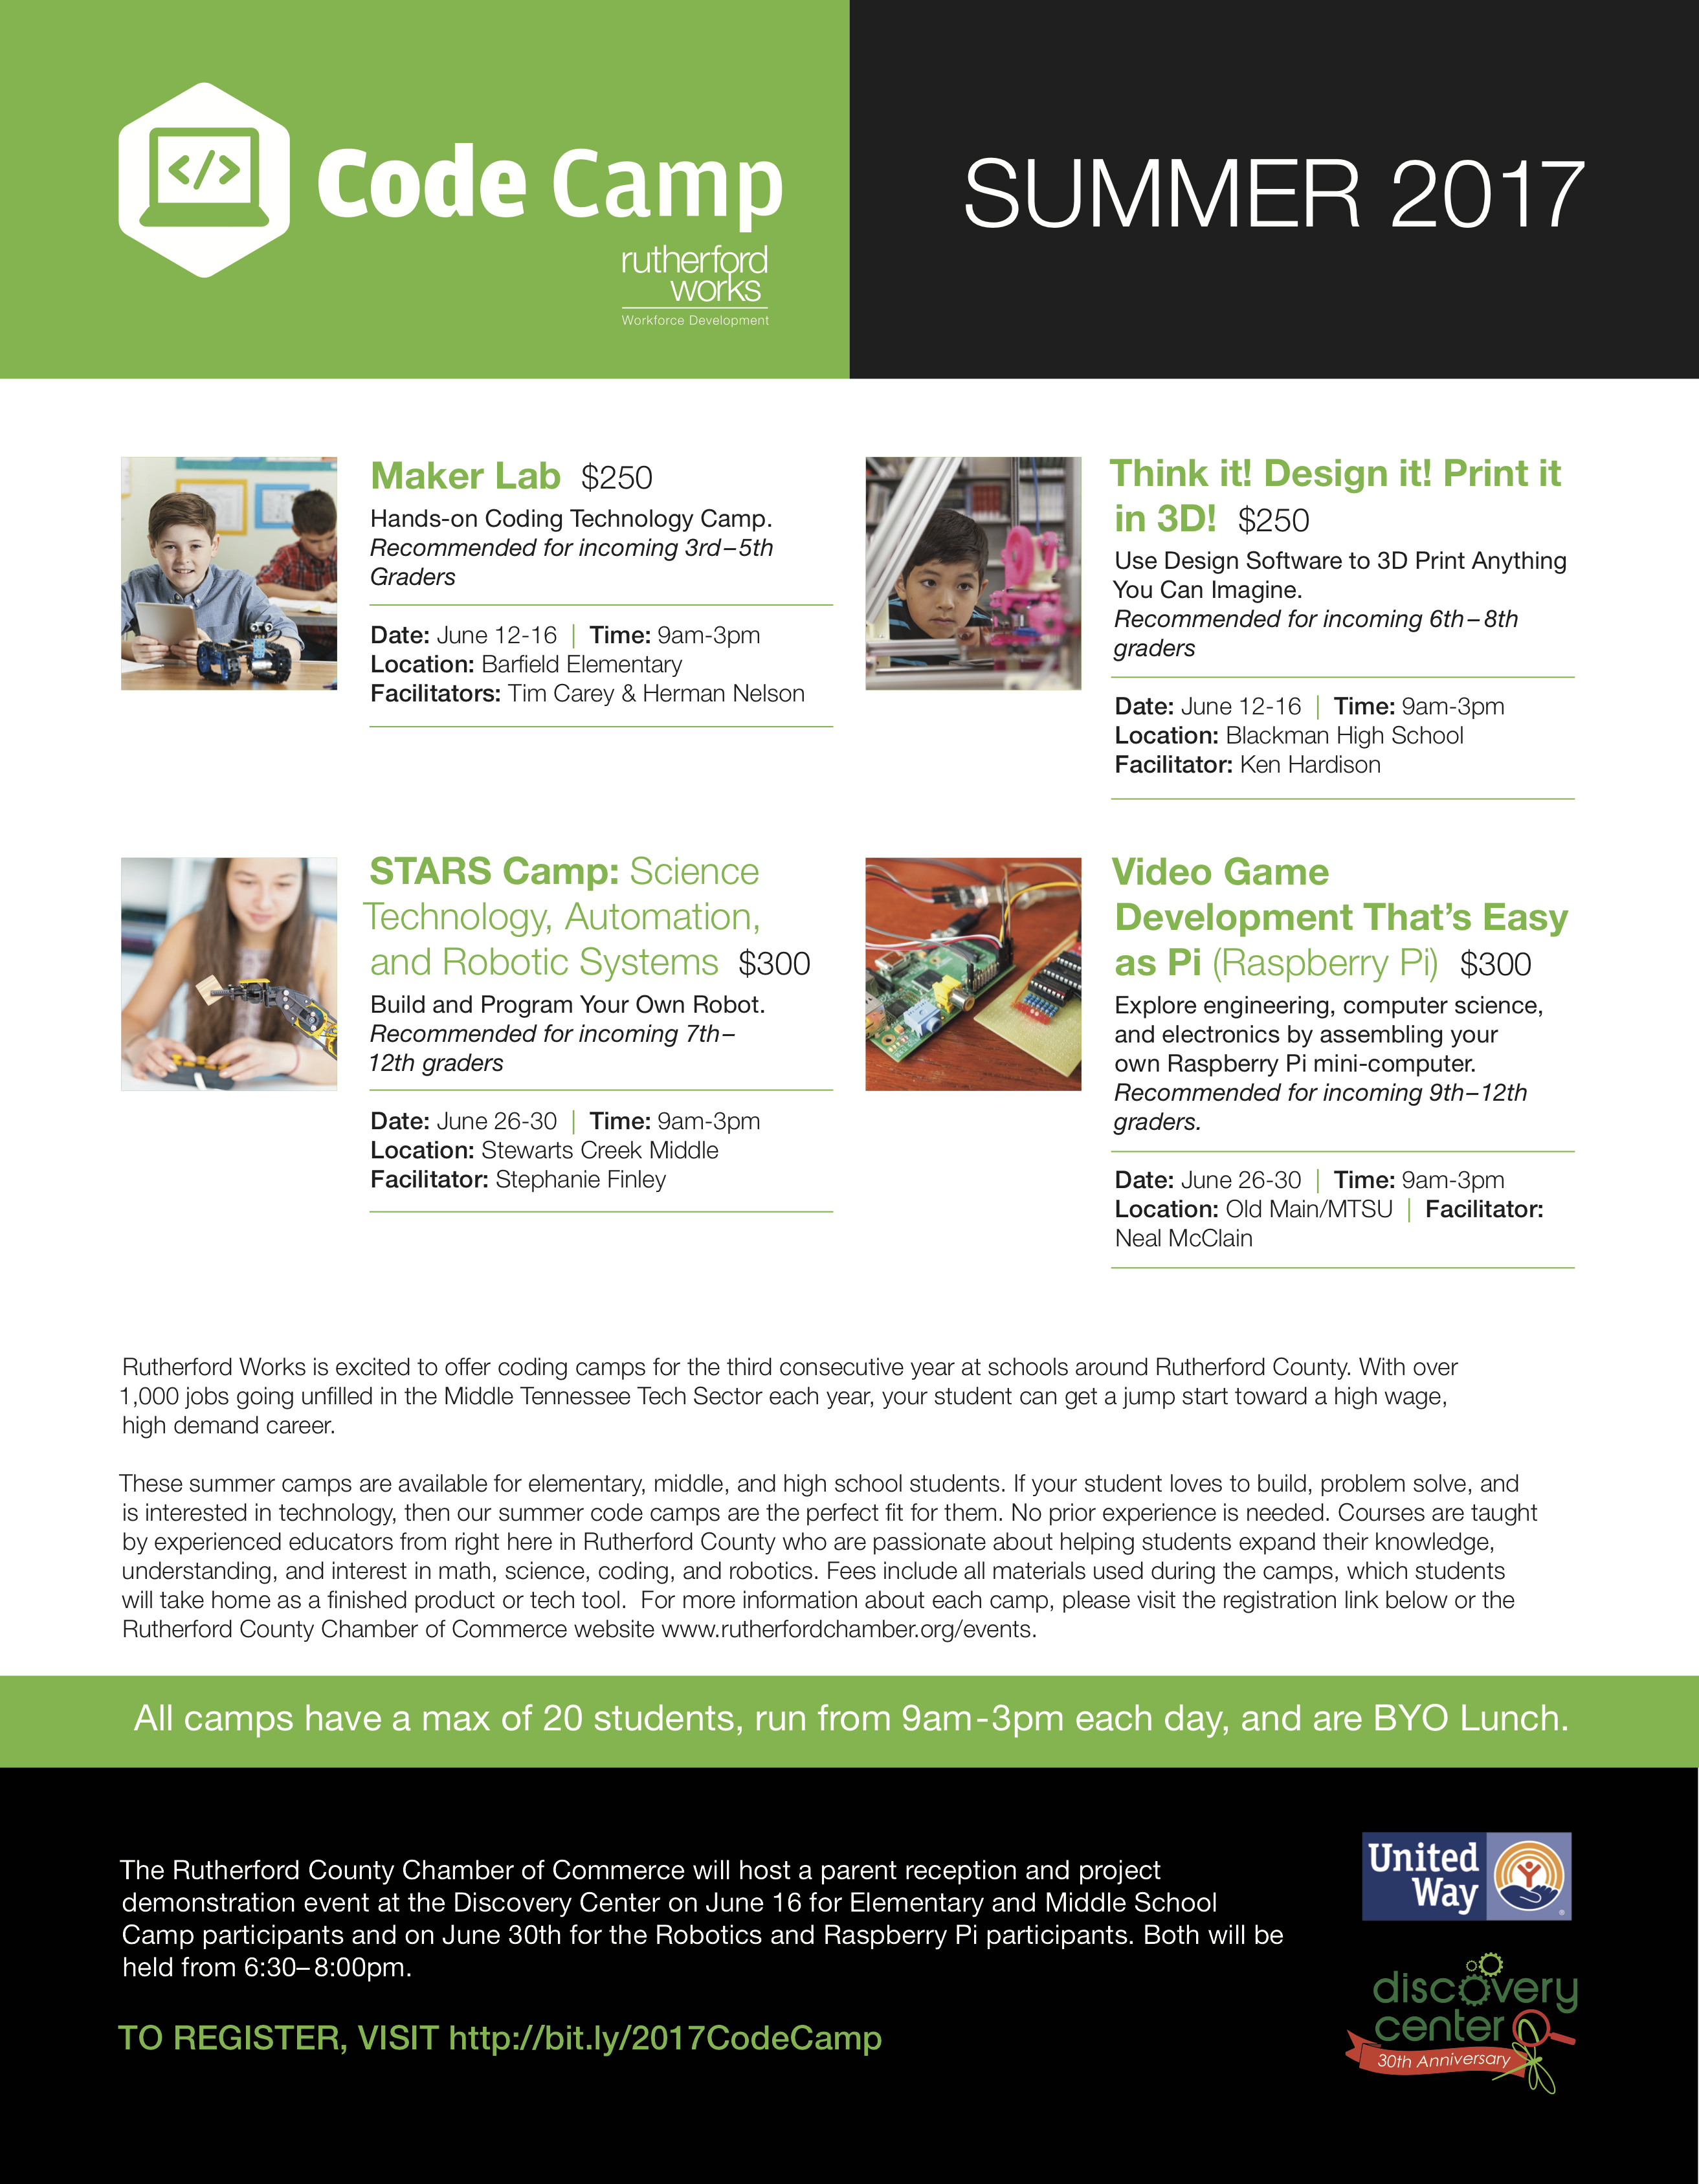 rutherford county schools code camp flyer 2017